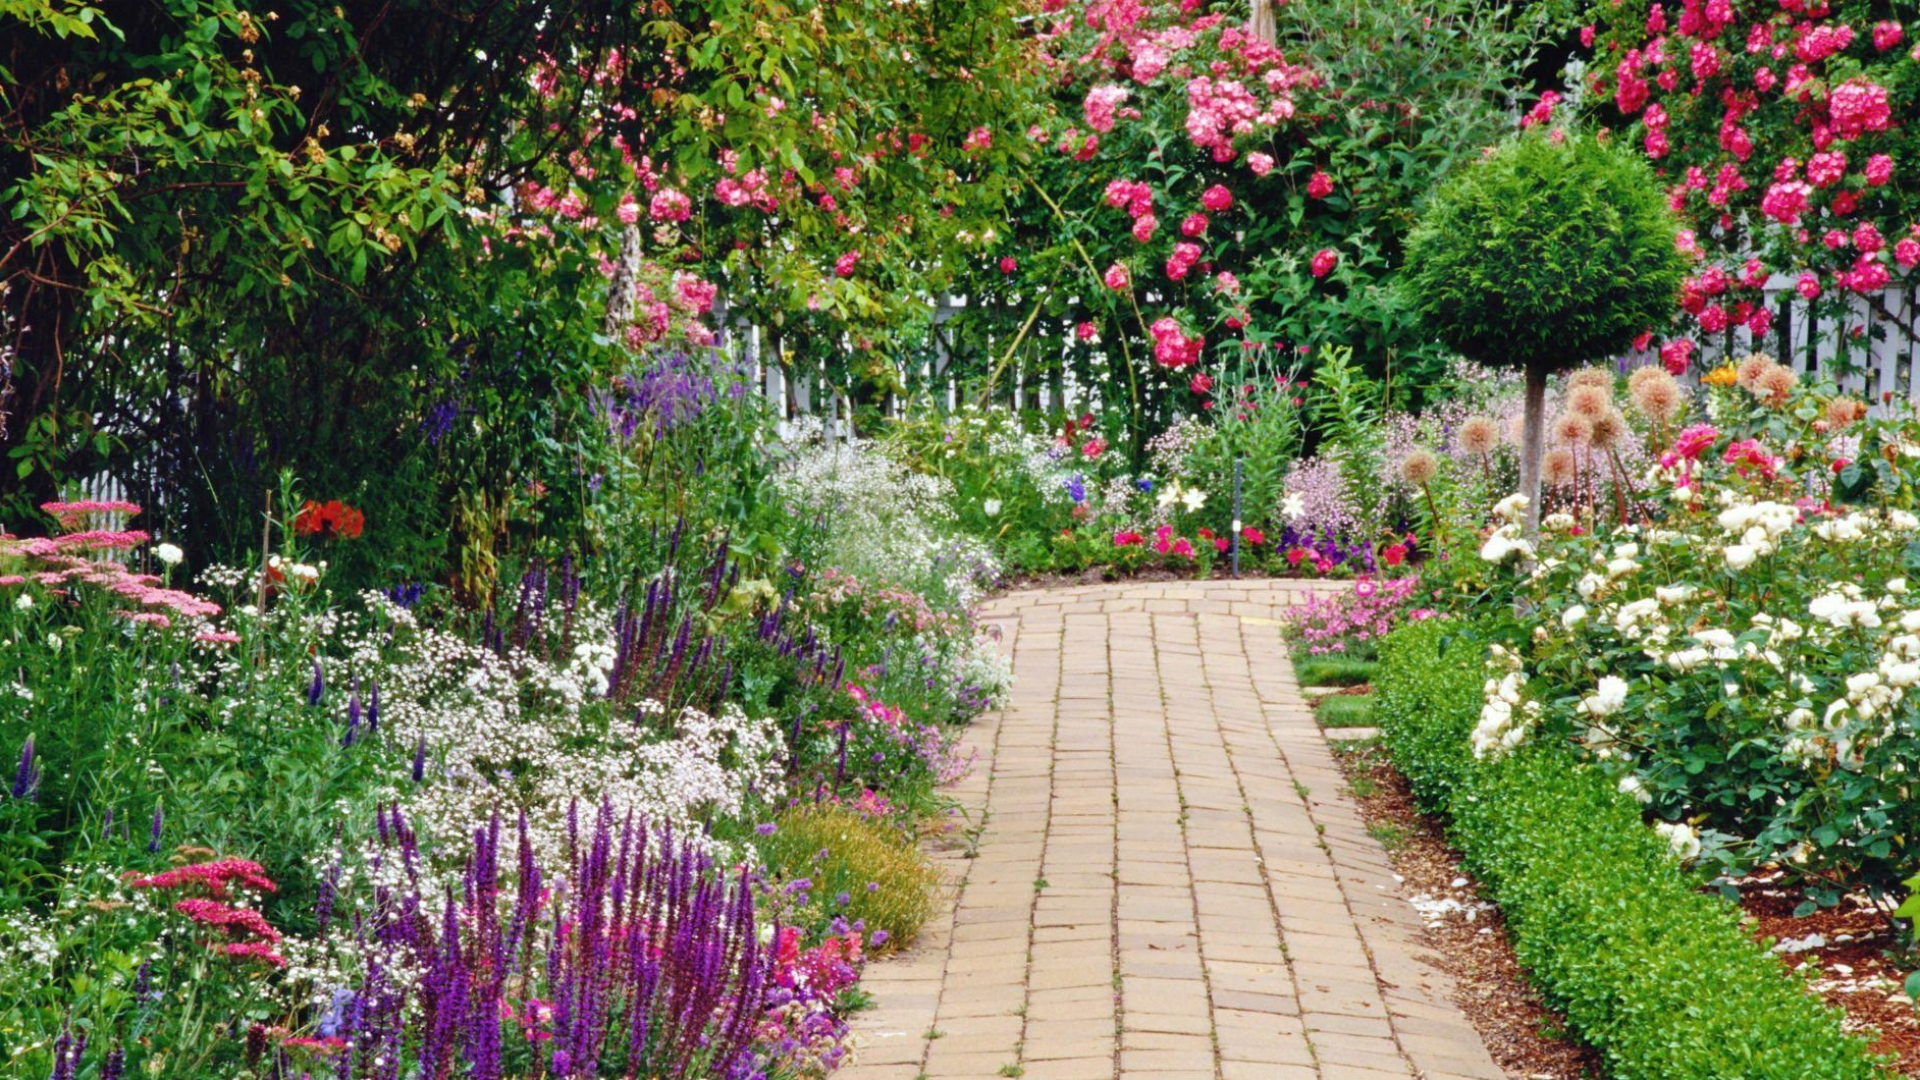 download wallpaper 1920x1080 flowers, garden, green, walking paths